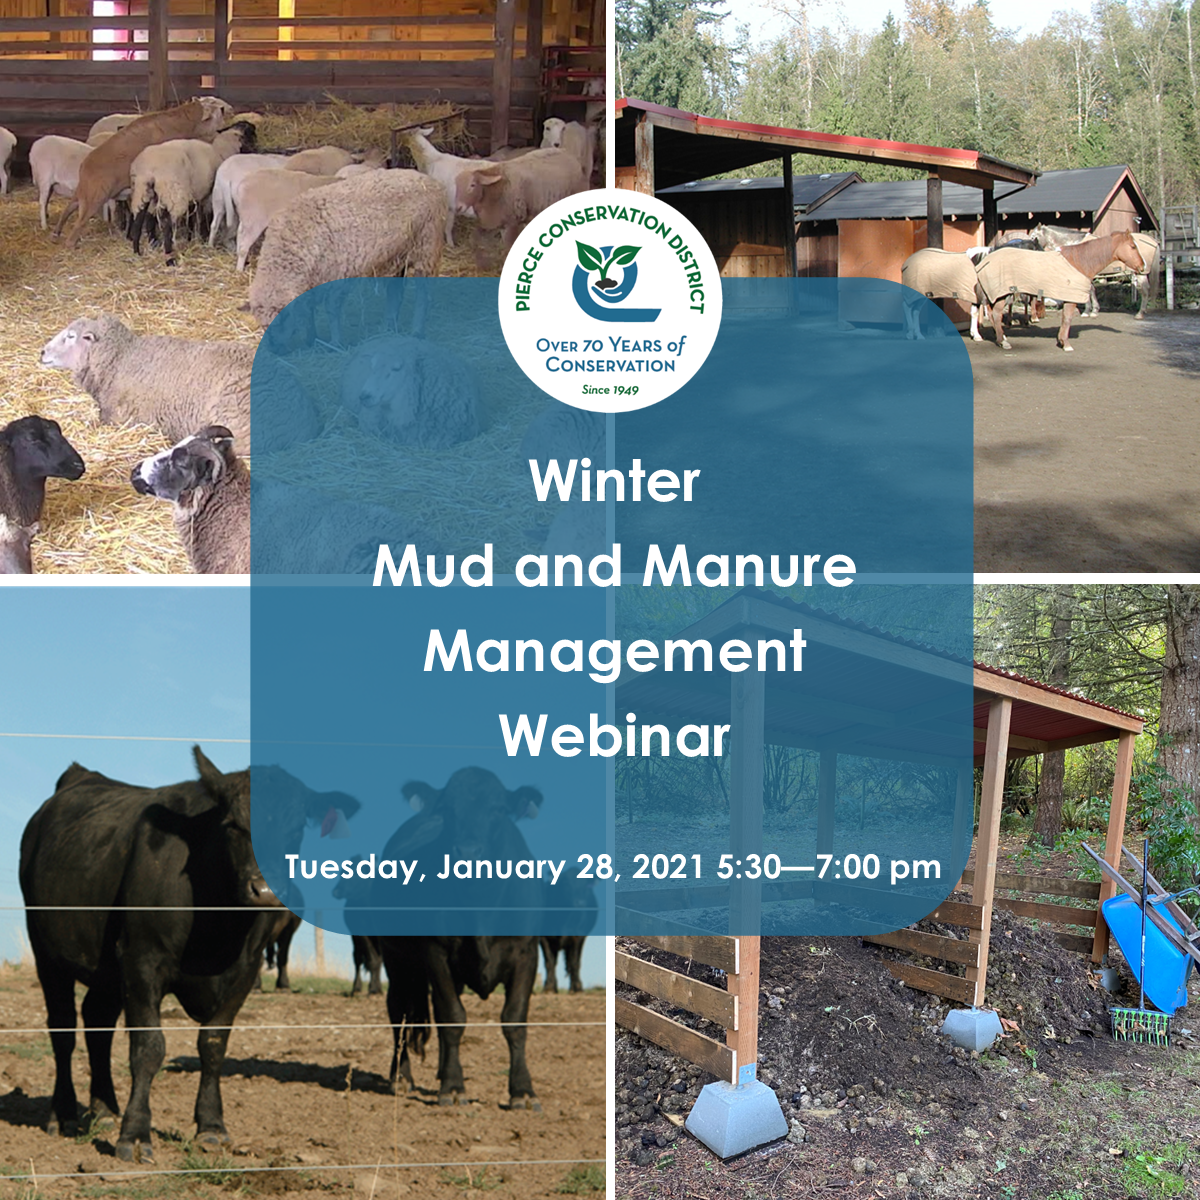 Winter Mud and Manure Management Flyer January 2021 Option 1